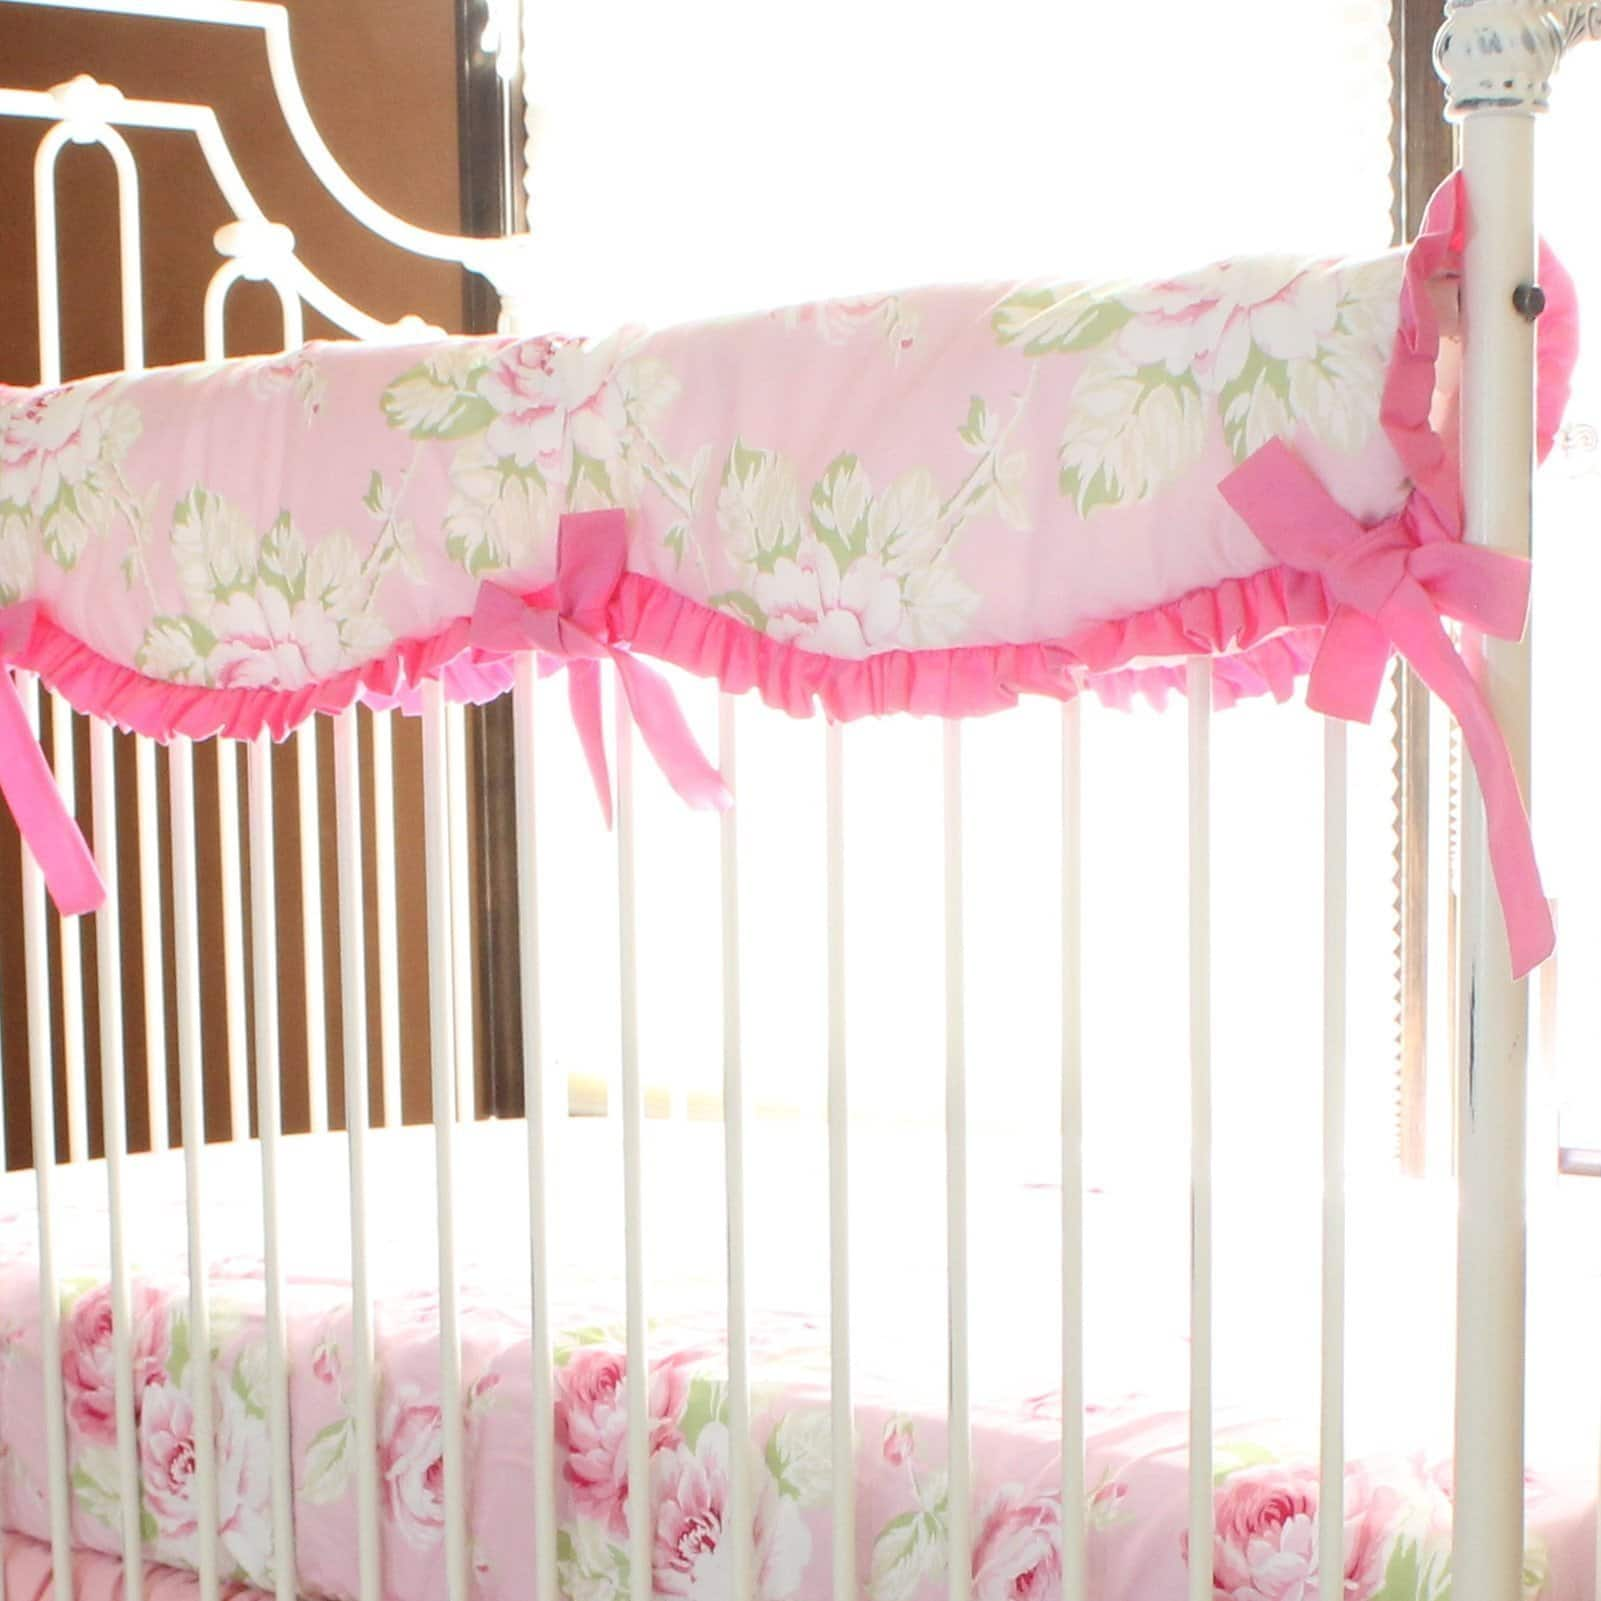 Crib Rail Cover With Monogram Pink Floral Pink Desert